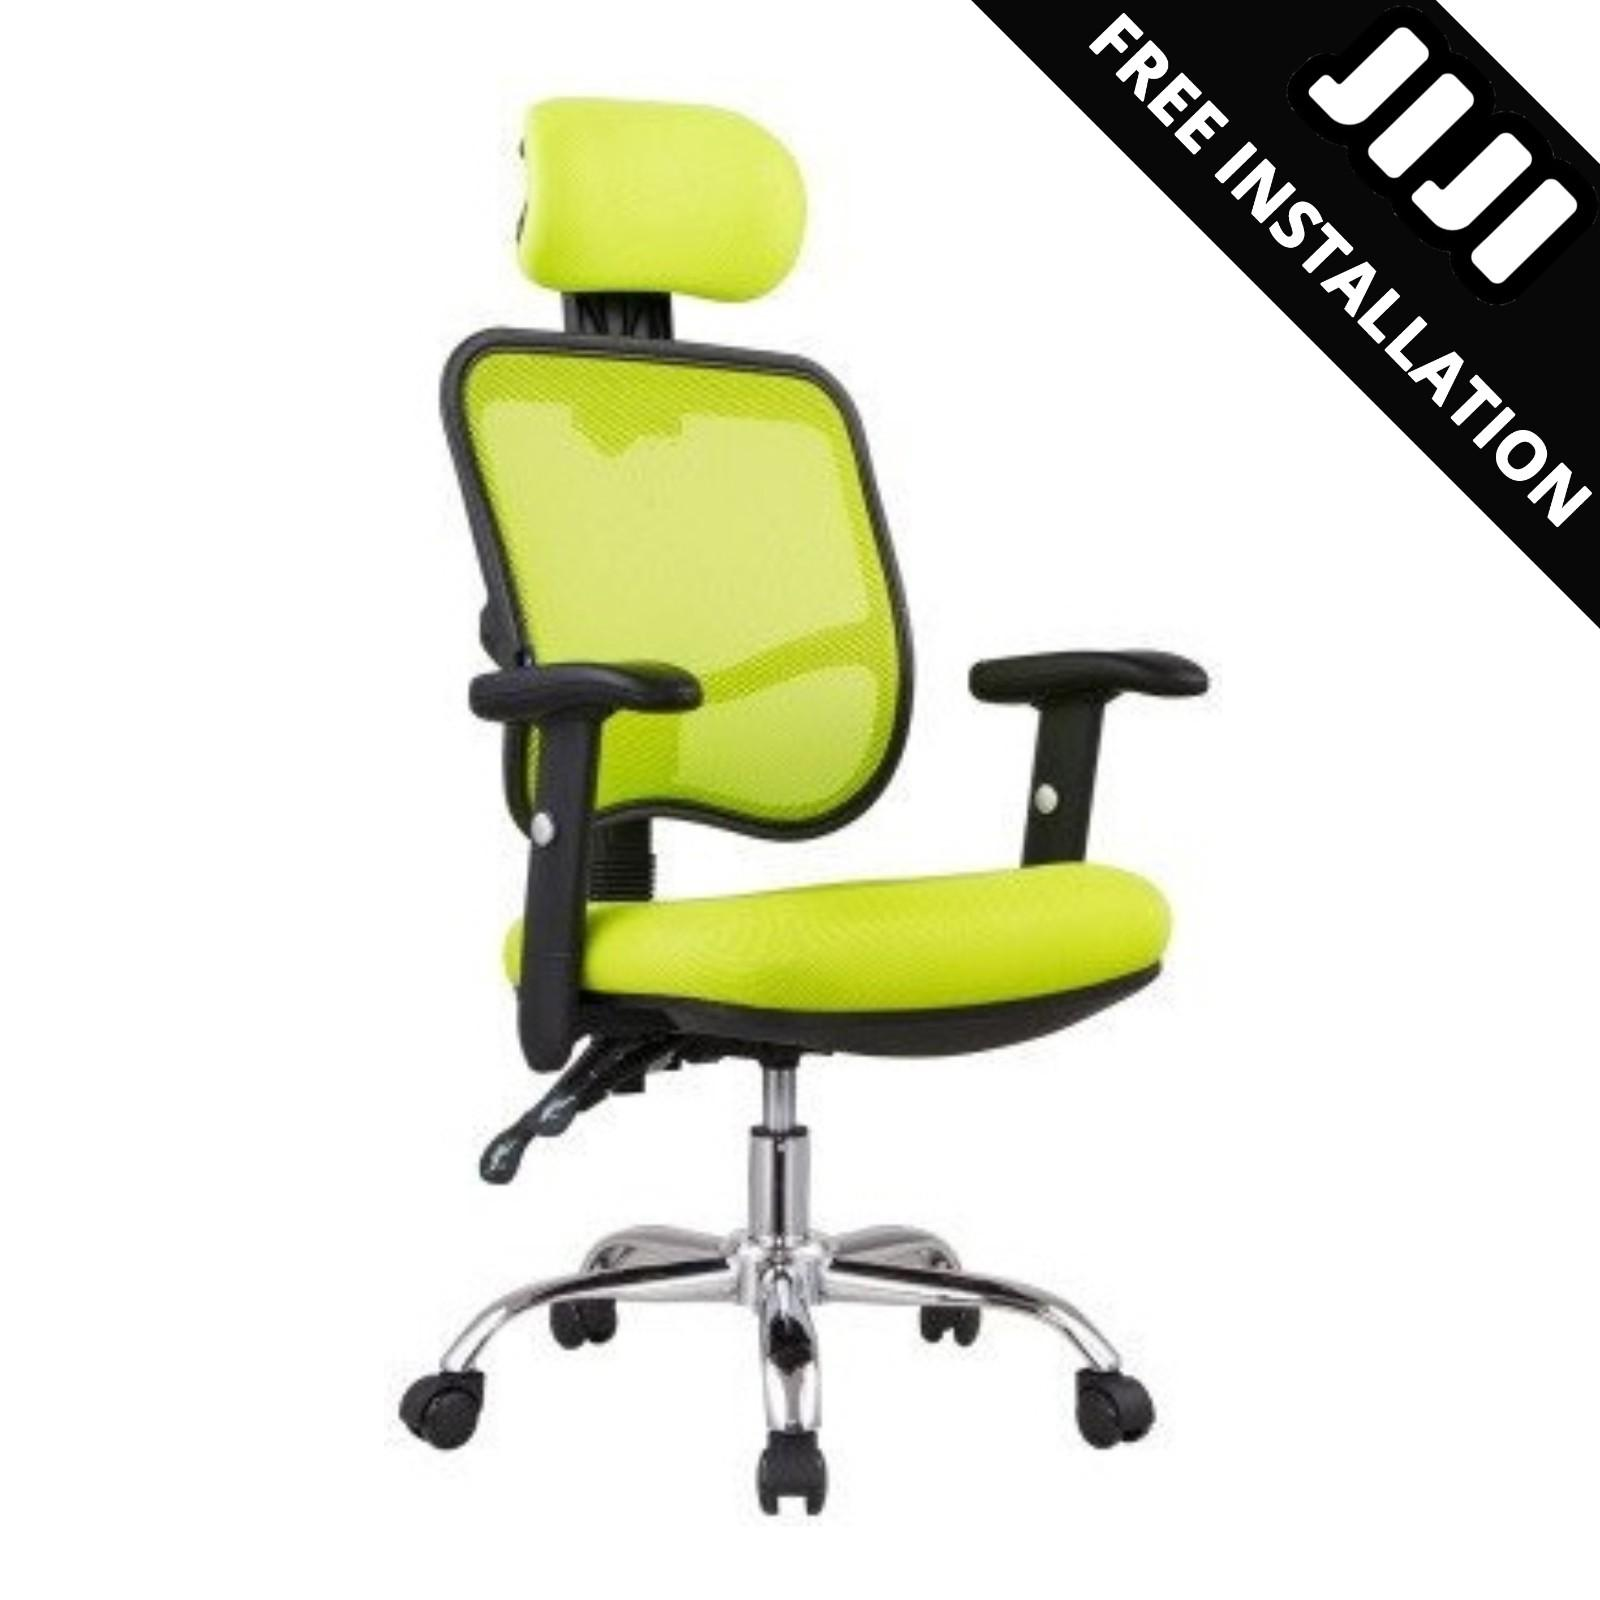 Jiji Office Executive Chair Ver 1 Adjustable Armrest Free Installation Home Office Chair Office Chairs Study Chair Gaming Chair Ergonomic Free